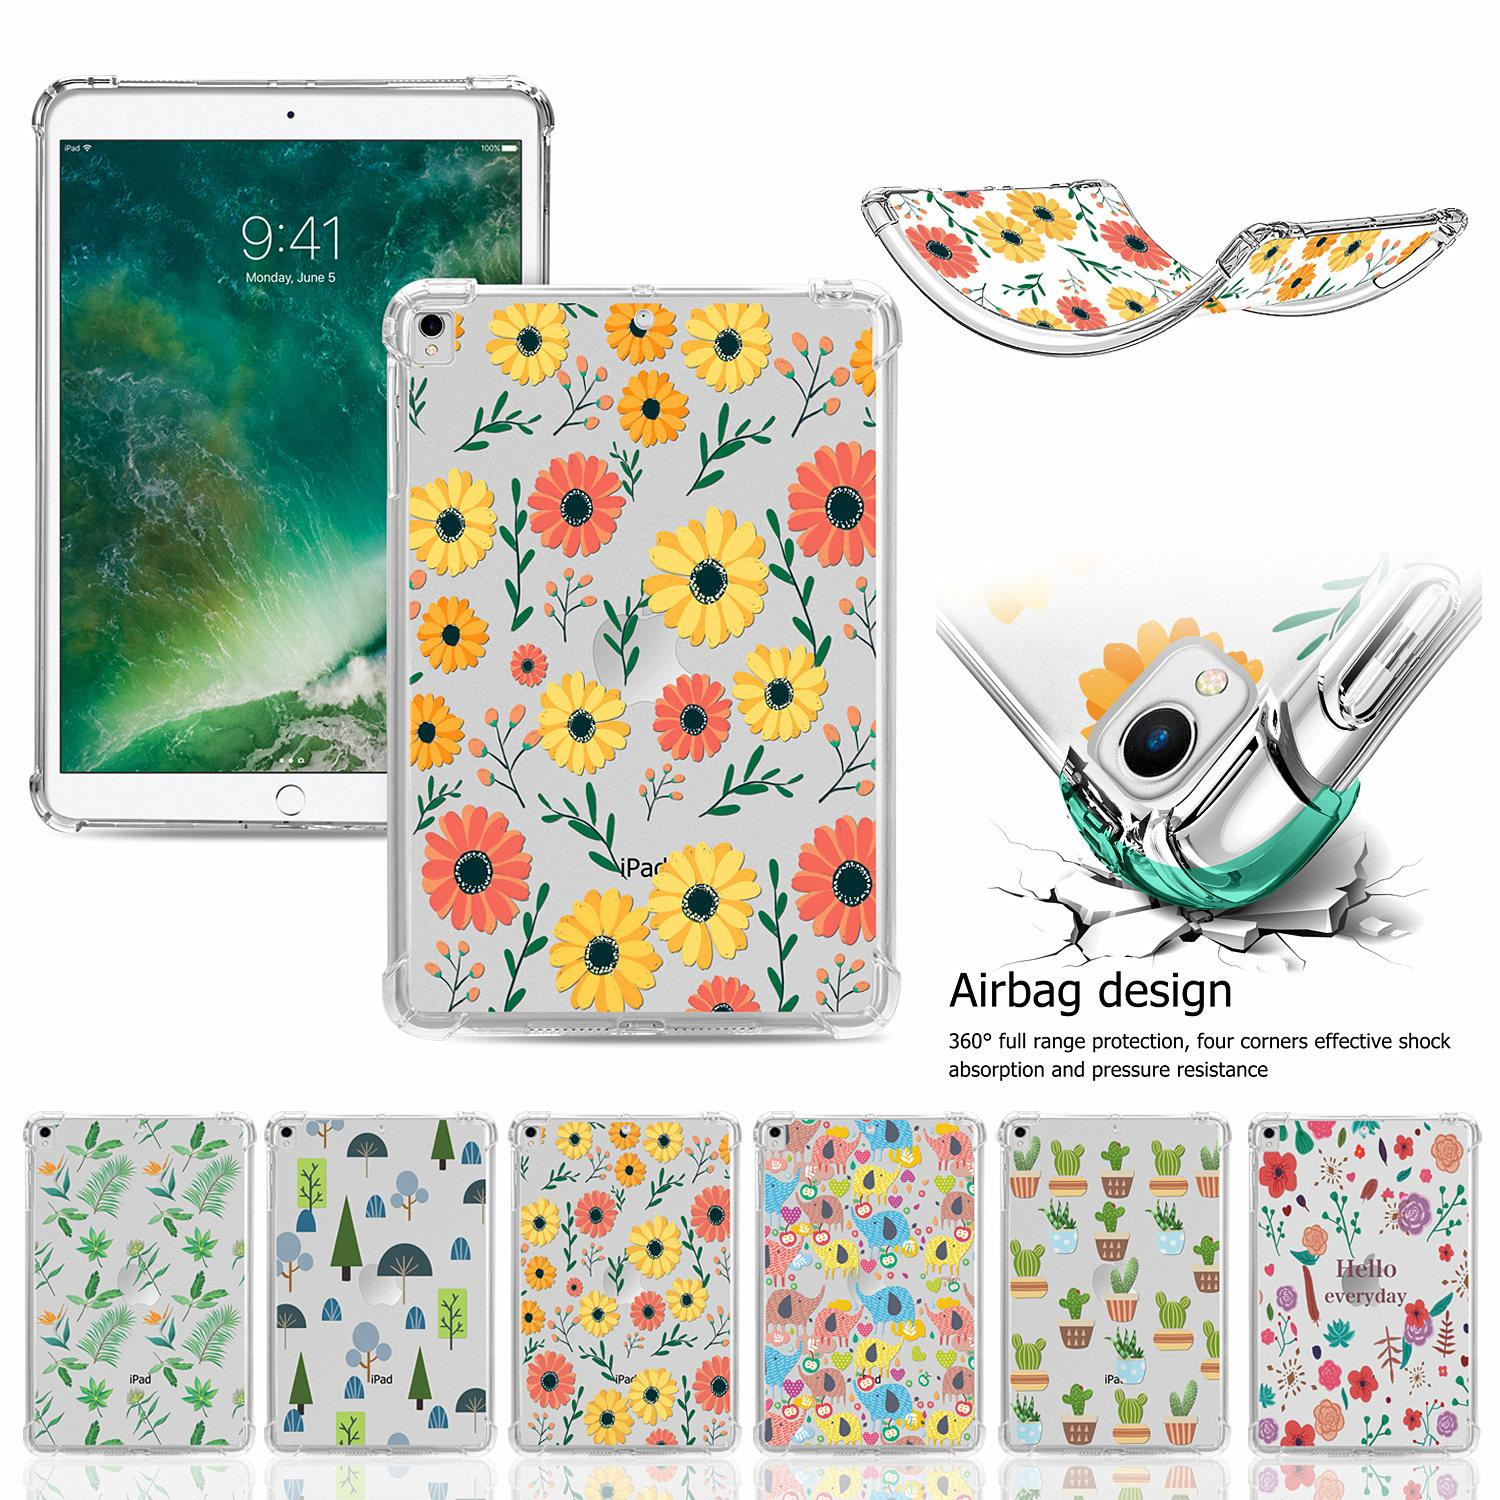 """Clear Tablet Cases Slim Silicone Transparent Soft Back Cover Case For Apple iPad Pro 9.7"""" 12.9 Inch Mini Air 7th Generation Flexible Protective Shell Skin Cute Daisy"""